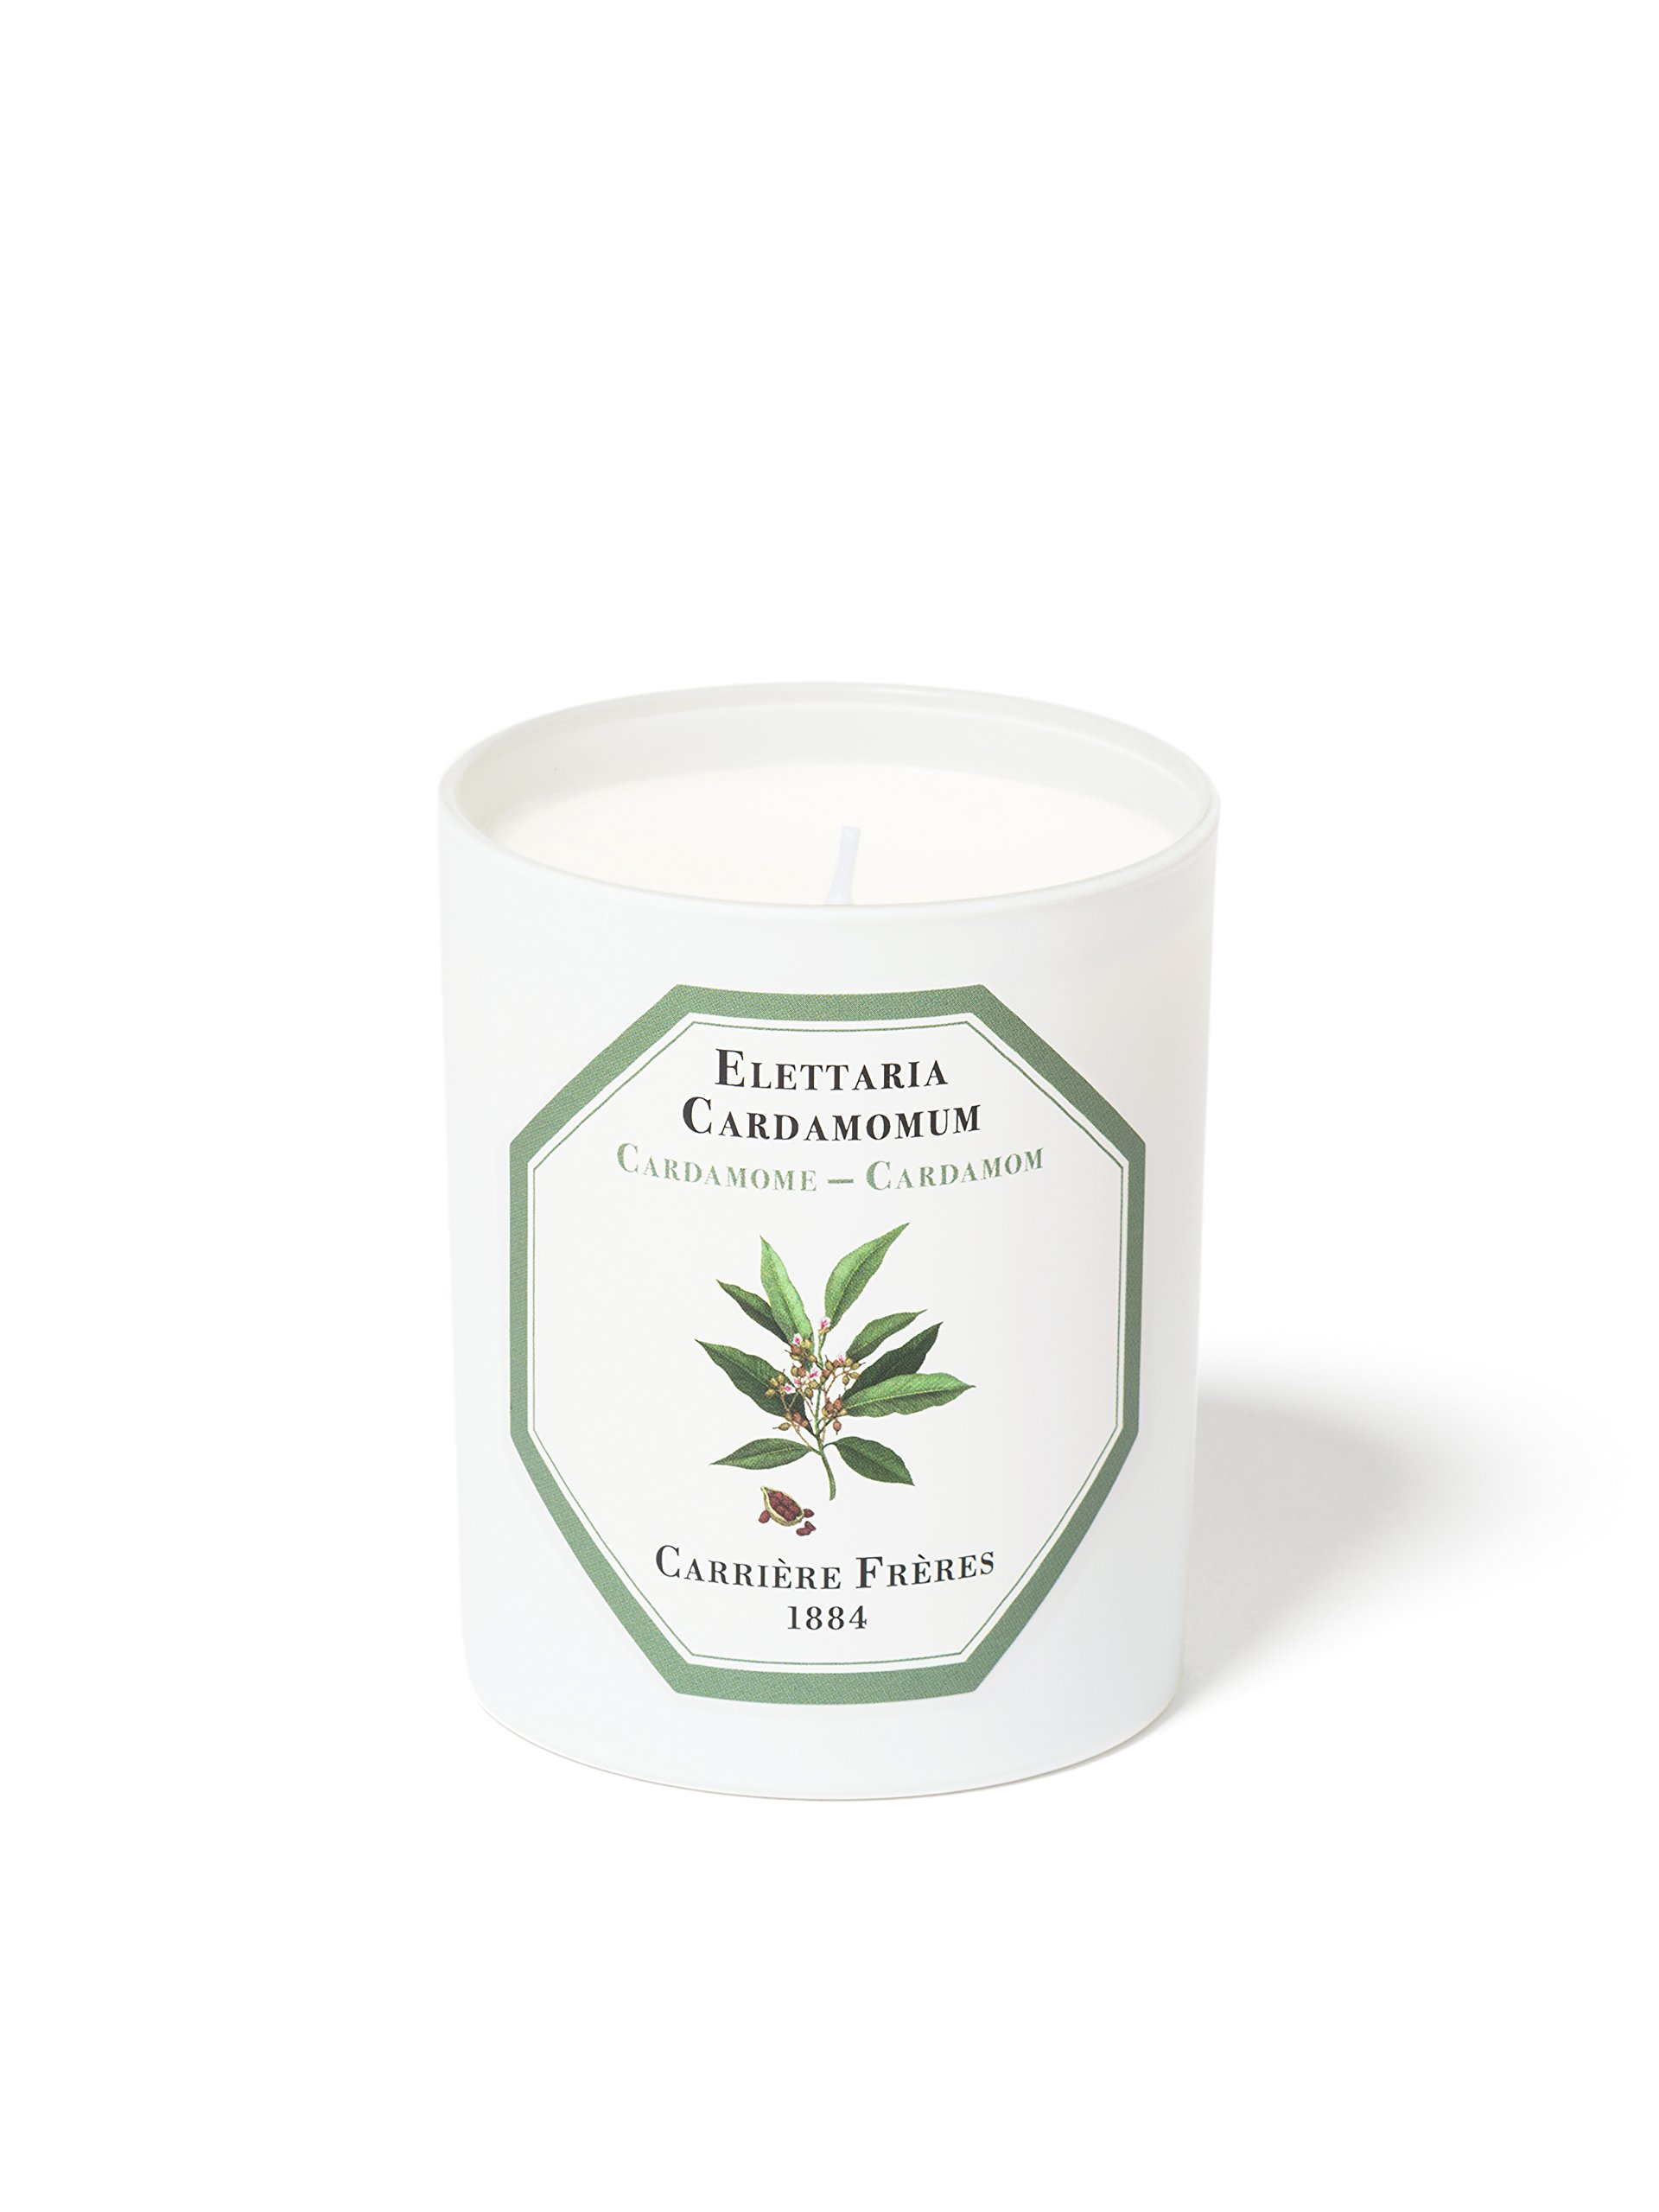 Carriere Freres Cardamom Candle - 6.5 oz by Carriere Freres